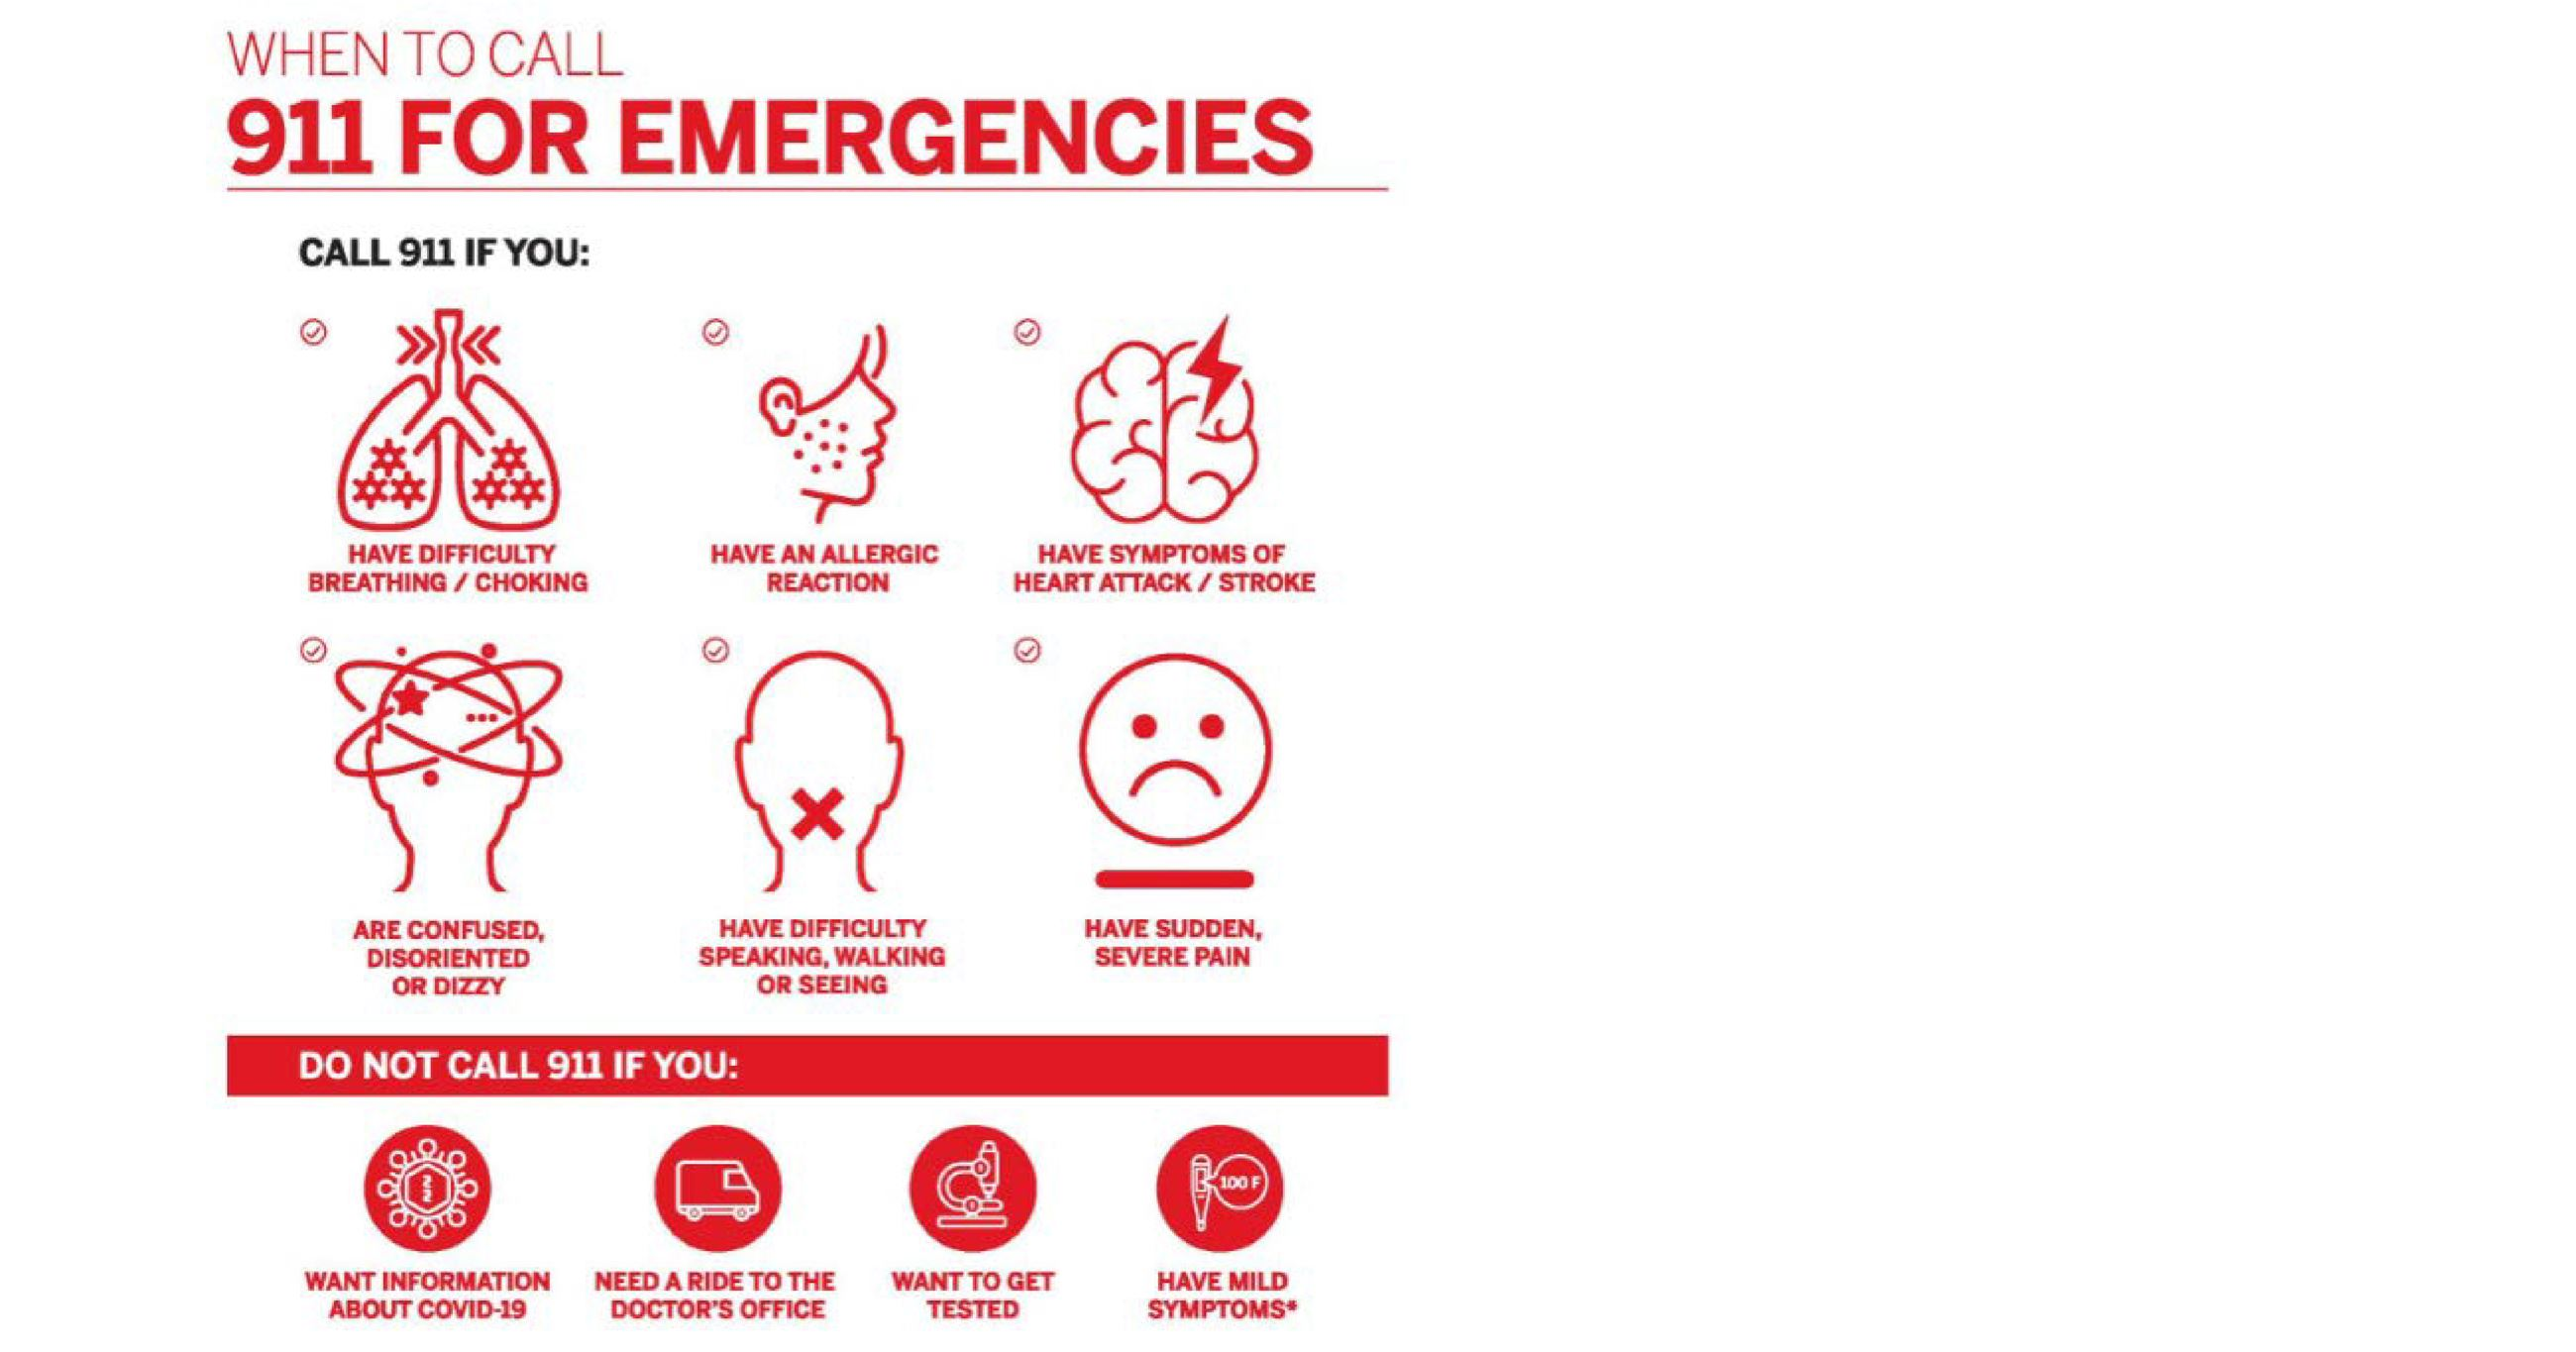 When to Call 9-1-1 for an Emergency Infographic